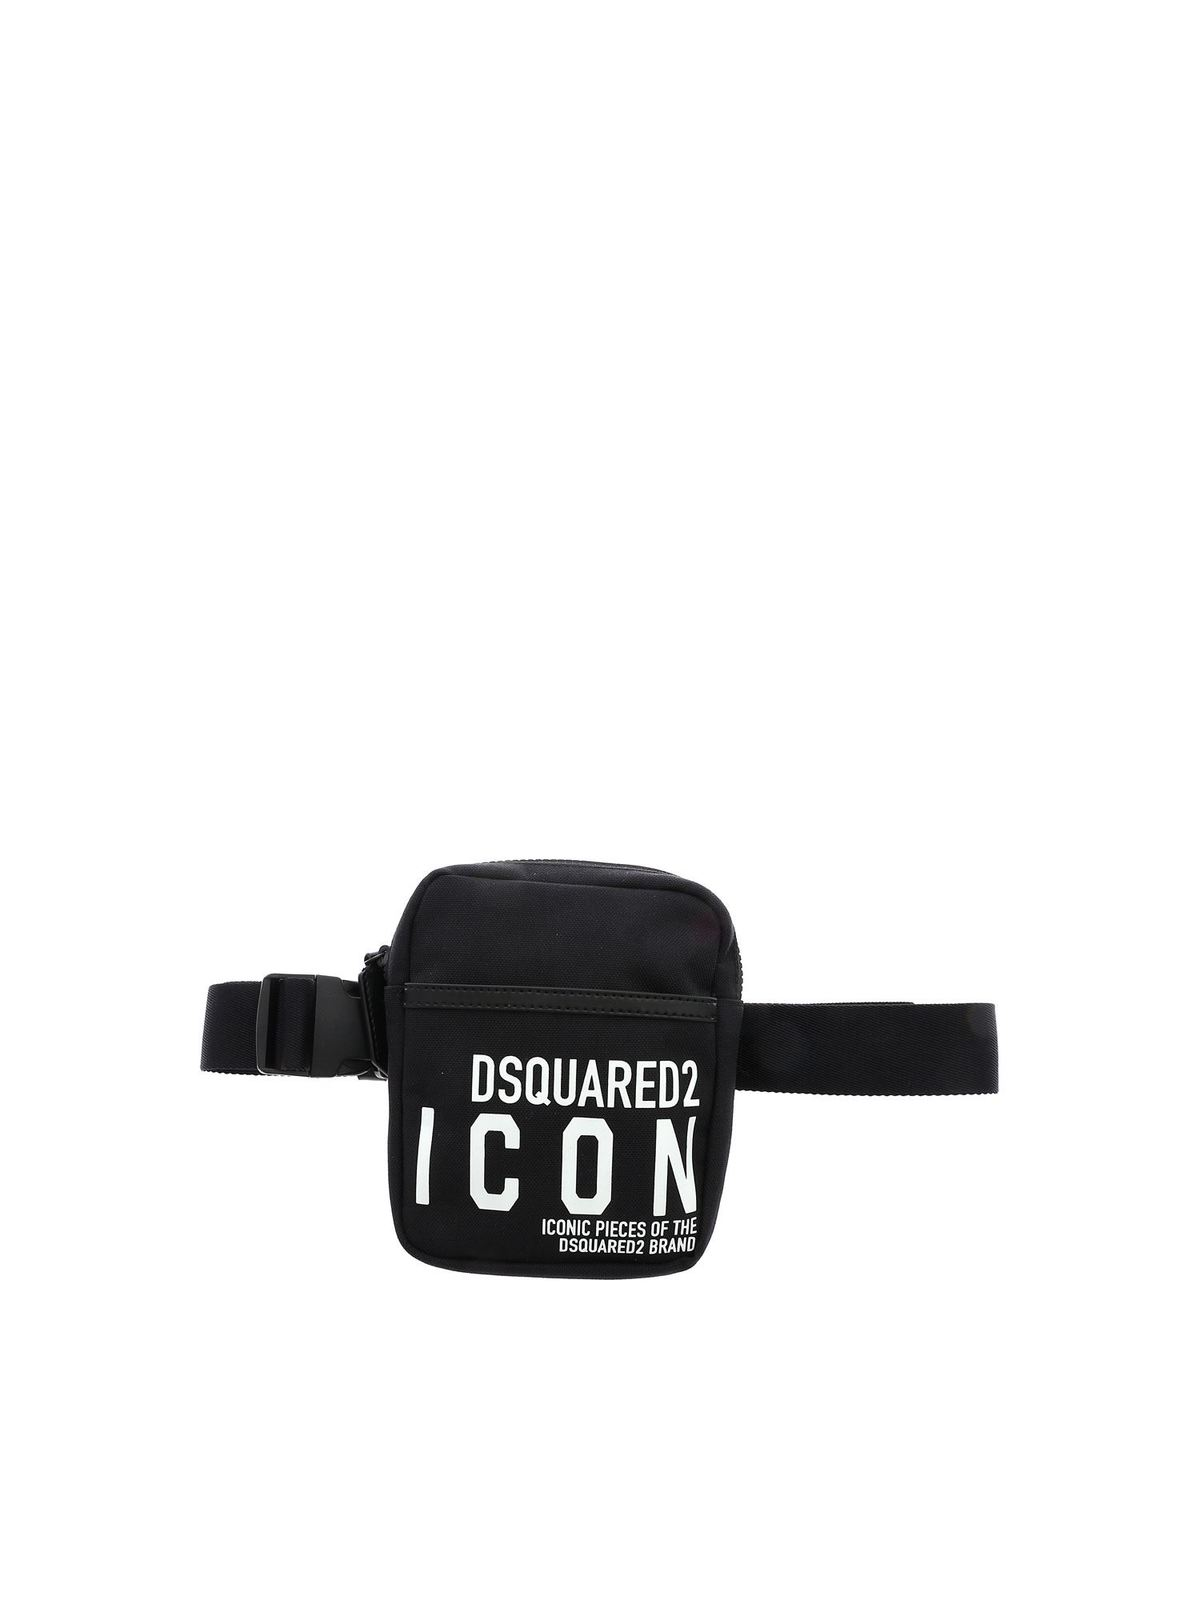 Dsquared2 Dsquared2 Icon small belt bag in black